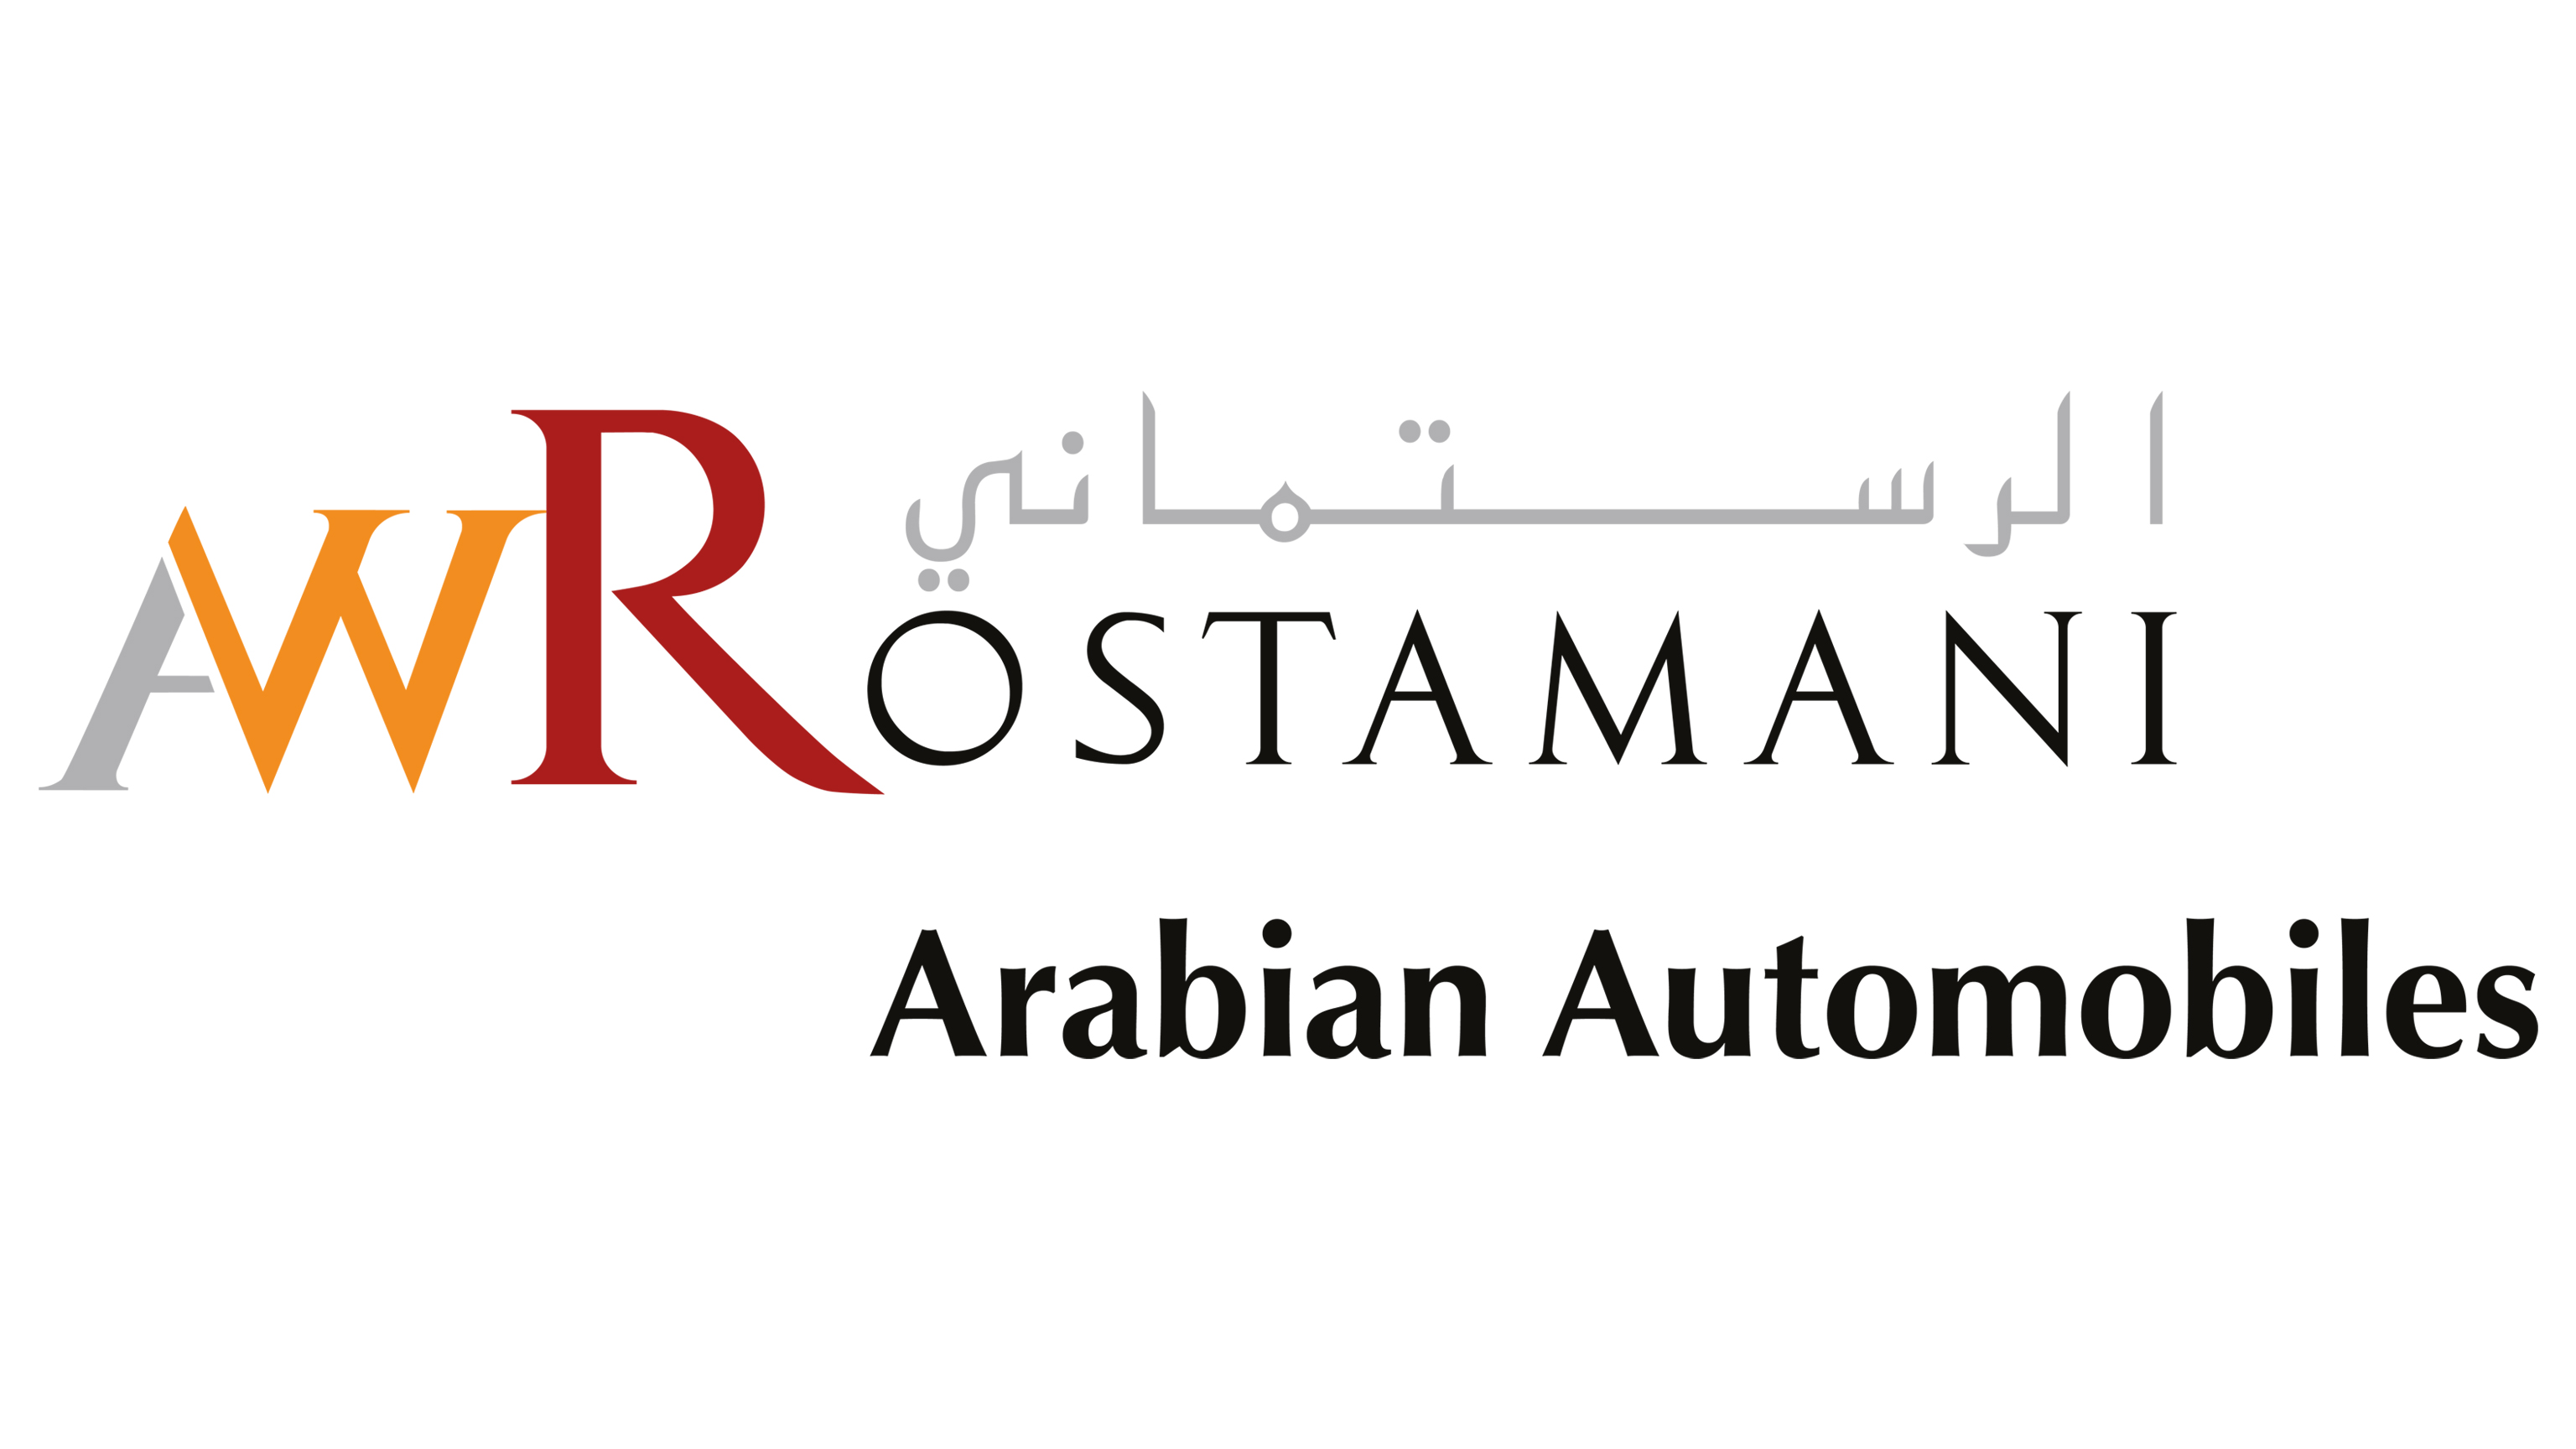 About Arabian Automobiles Company